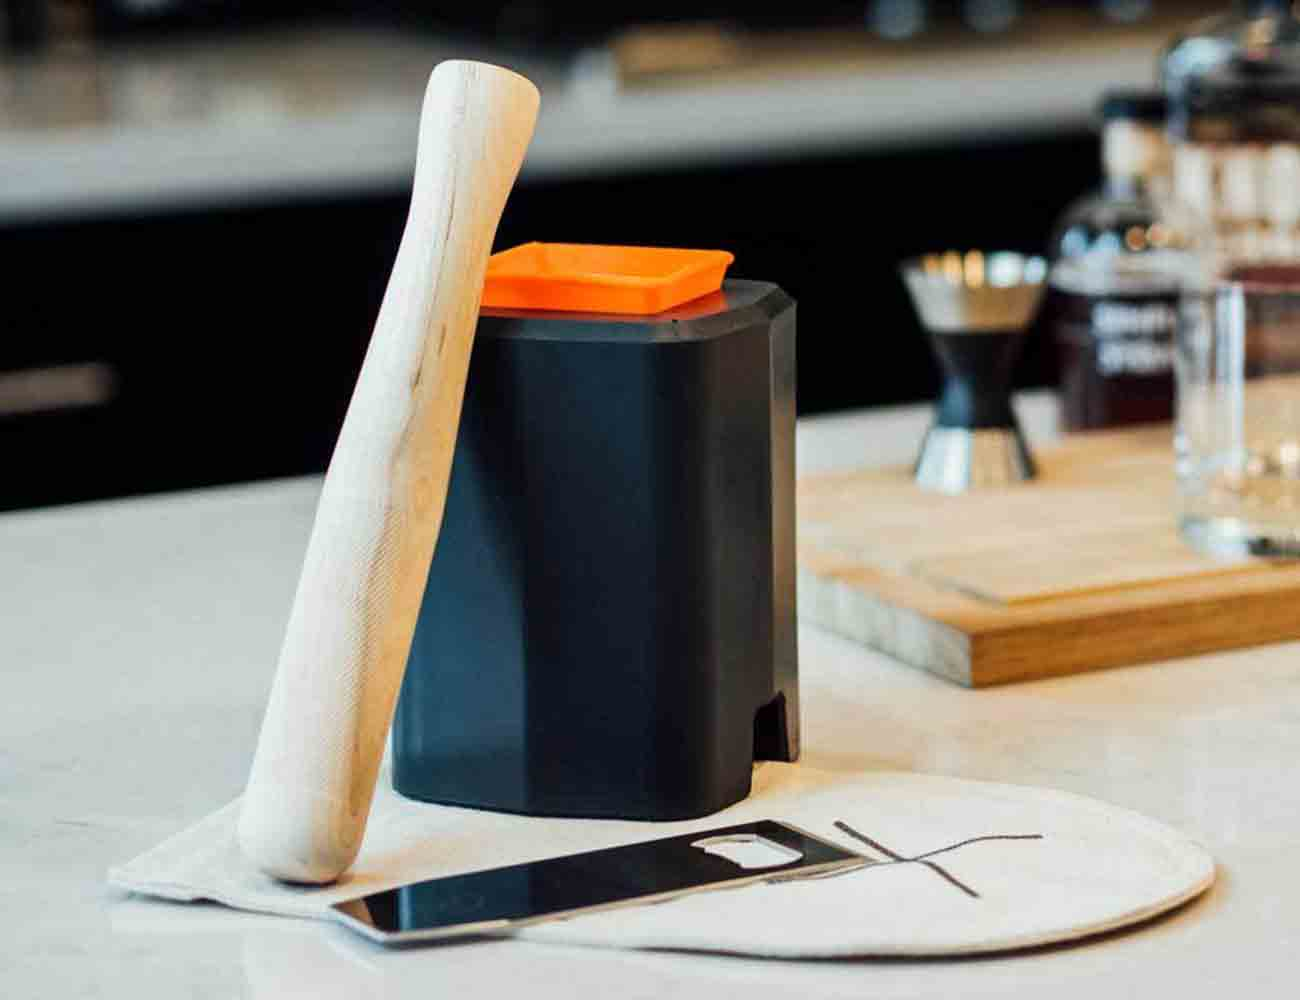 The Neat Ice Kit by Studio Neat